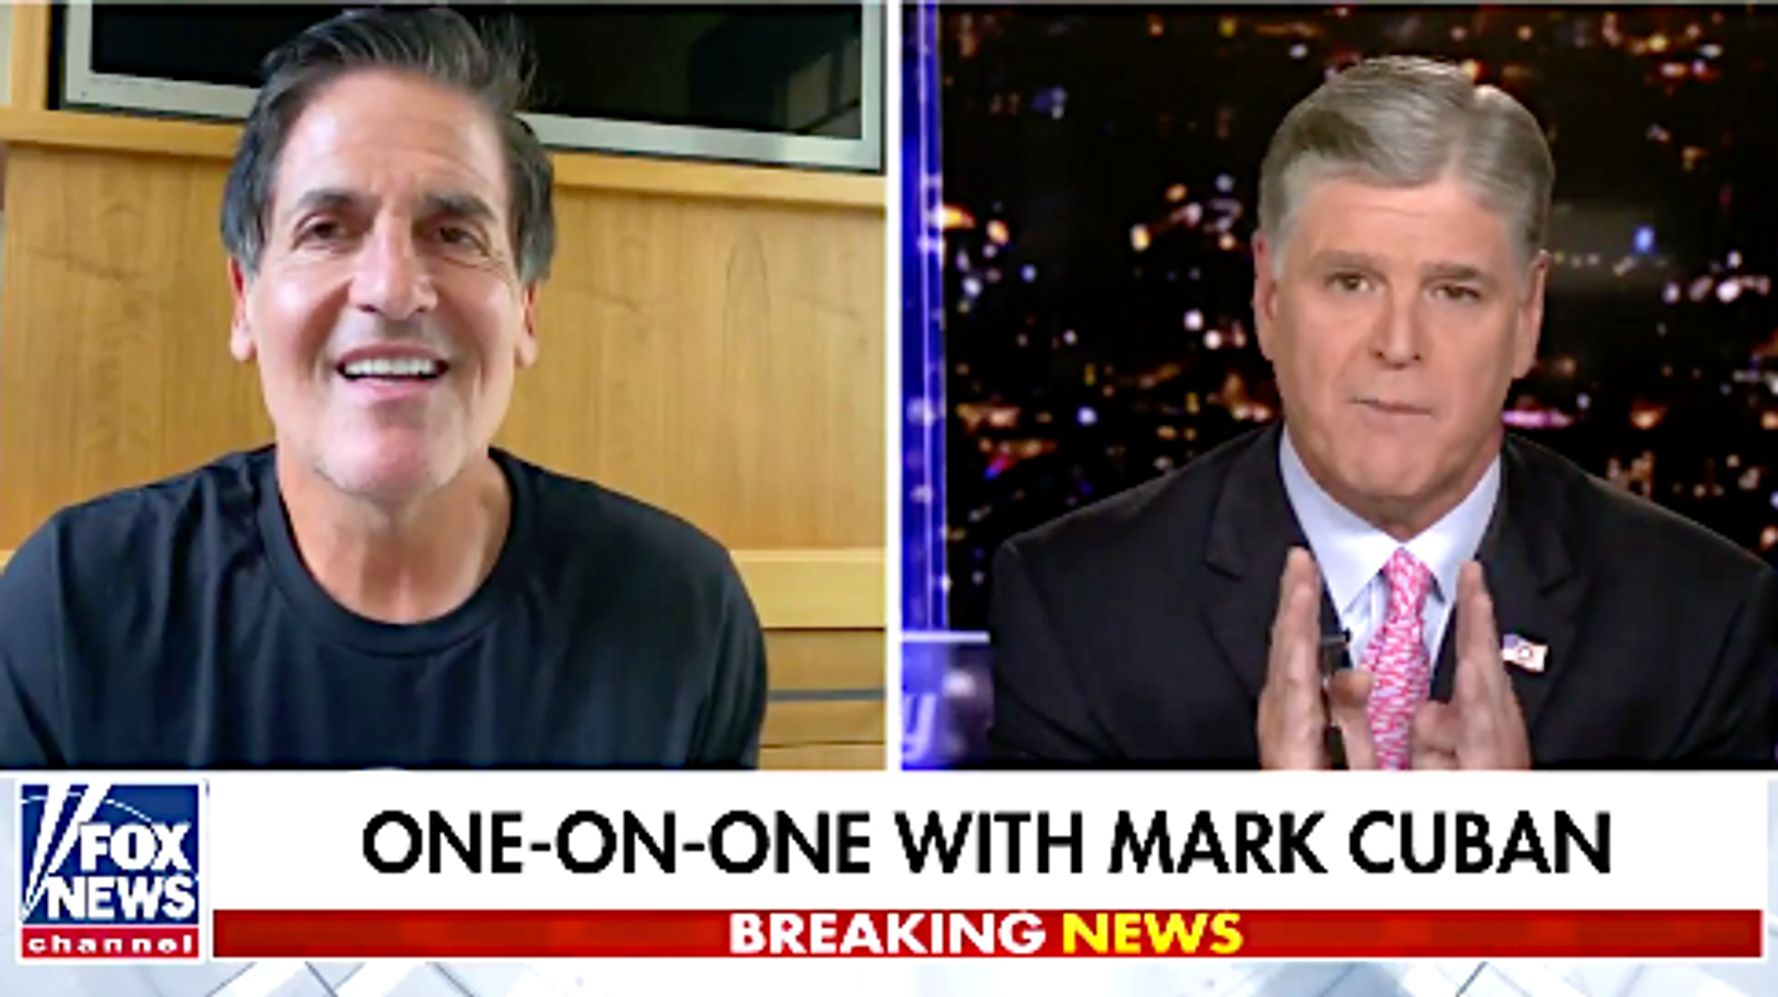 Mark Cuban Mocks Sean Hannity To His Face For Asking Donald Trump Softball Questions